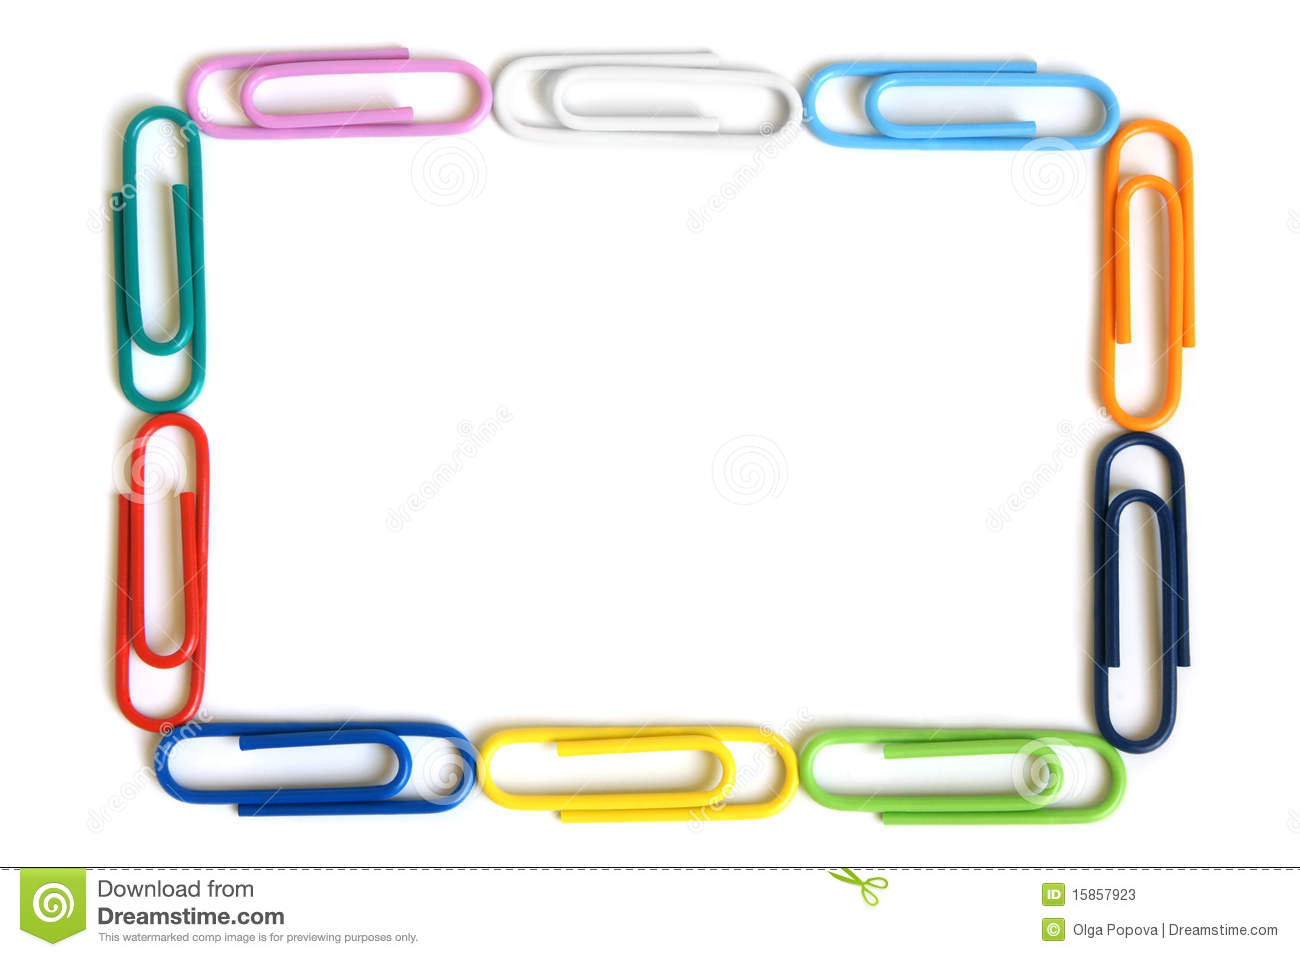 multicolored paper clips stock image. image of decor - 15857923